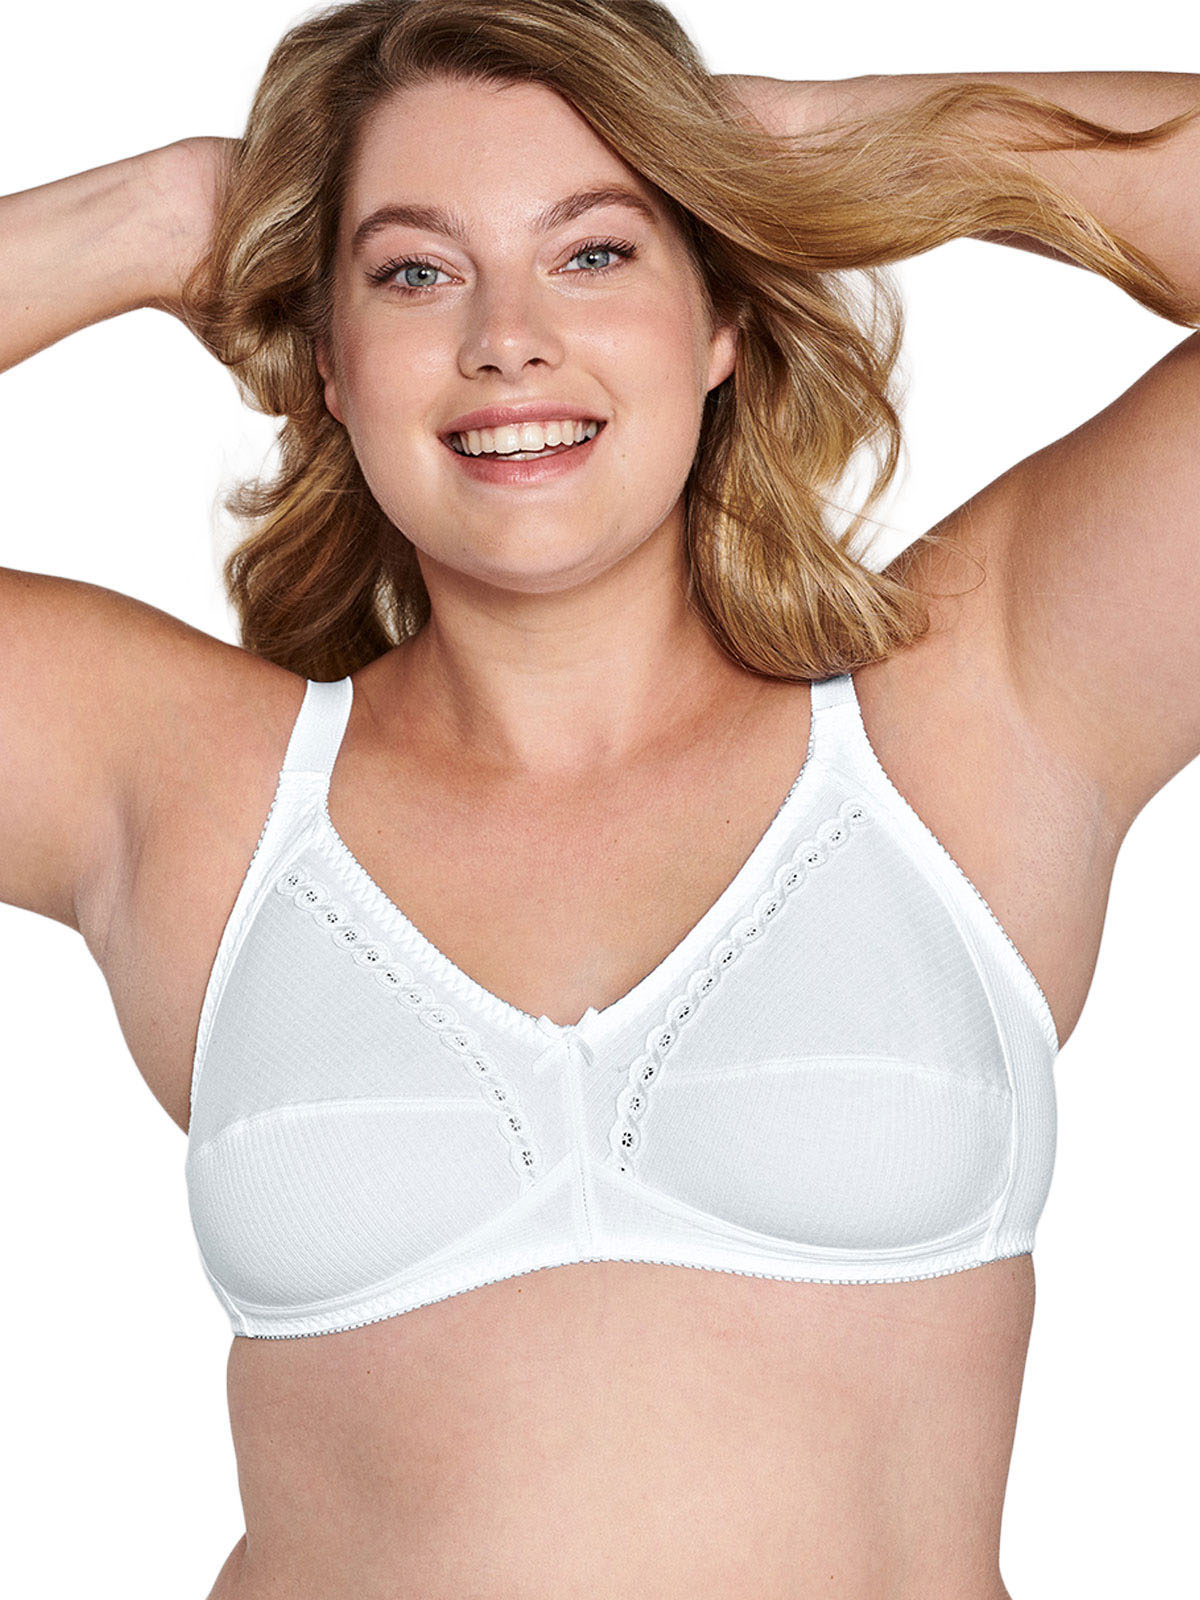 Naturana 2 Pack Non-wired Cotton Soft Bra 86545